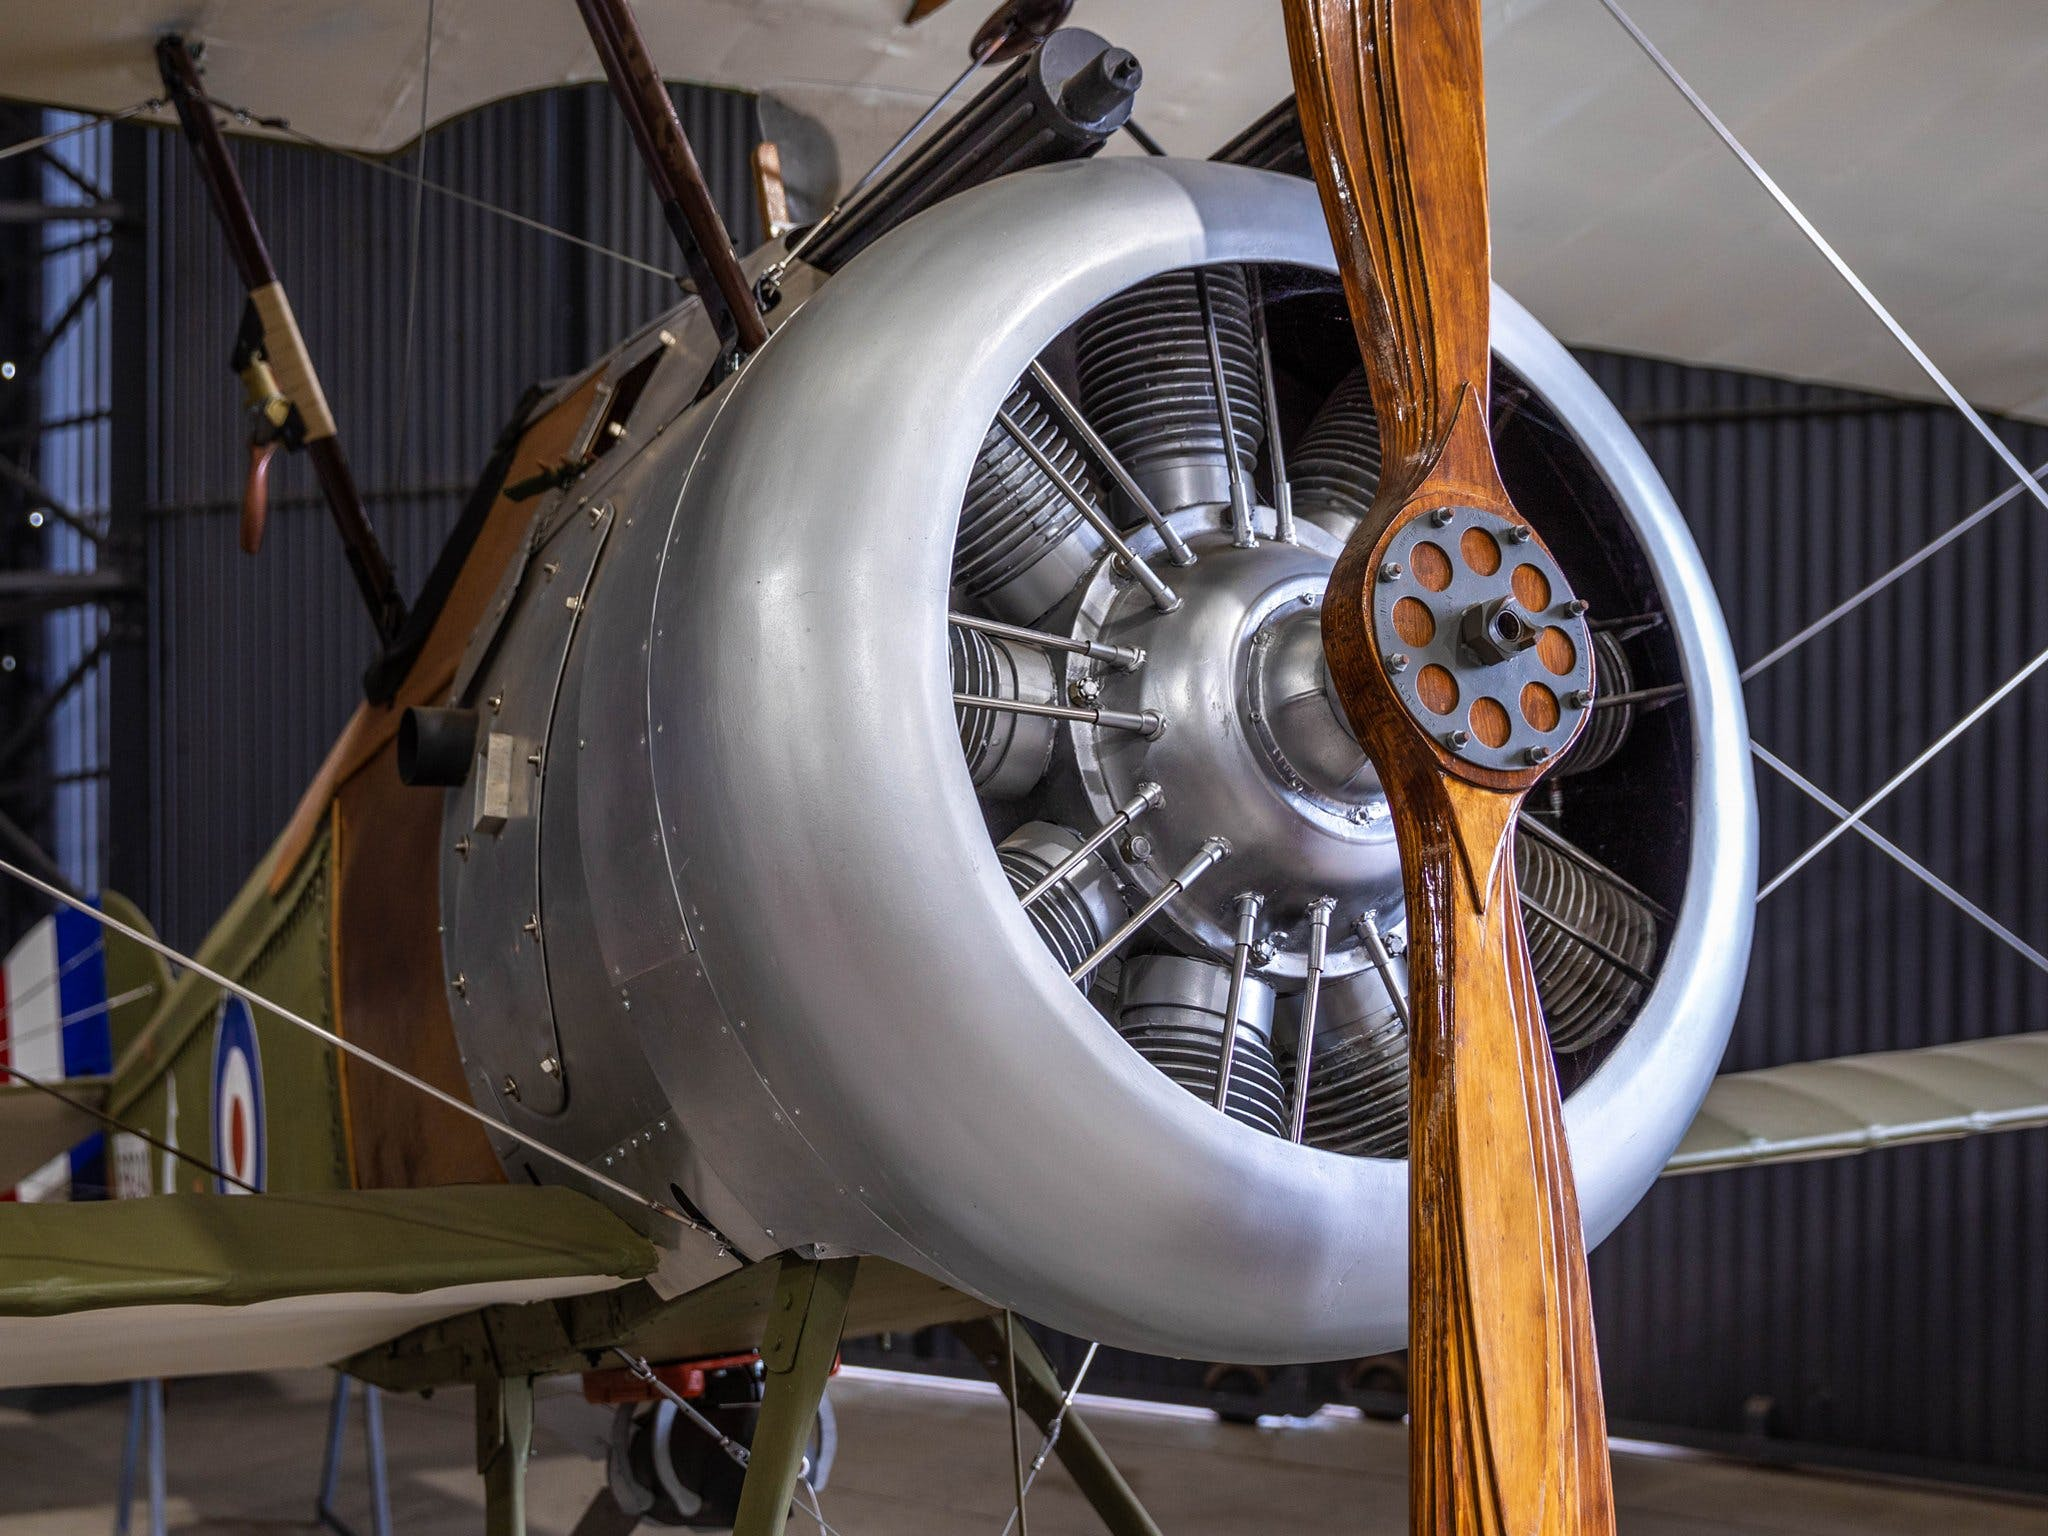 RAAF Amberley Aviation Heritage Centre - Tourism Adelaide